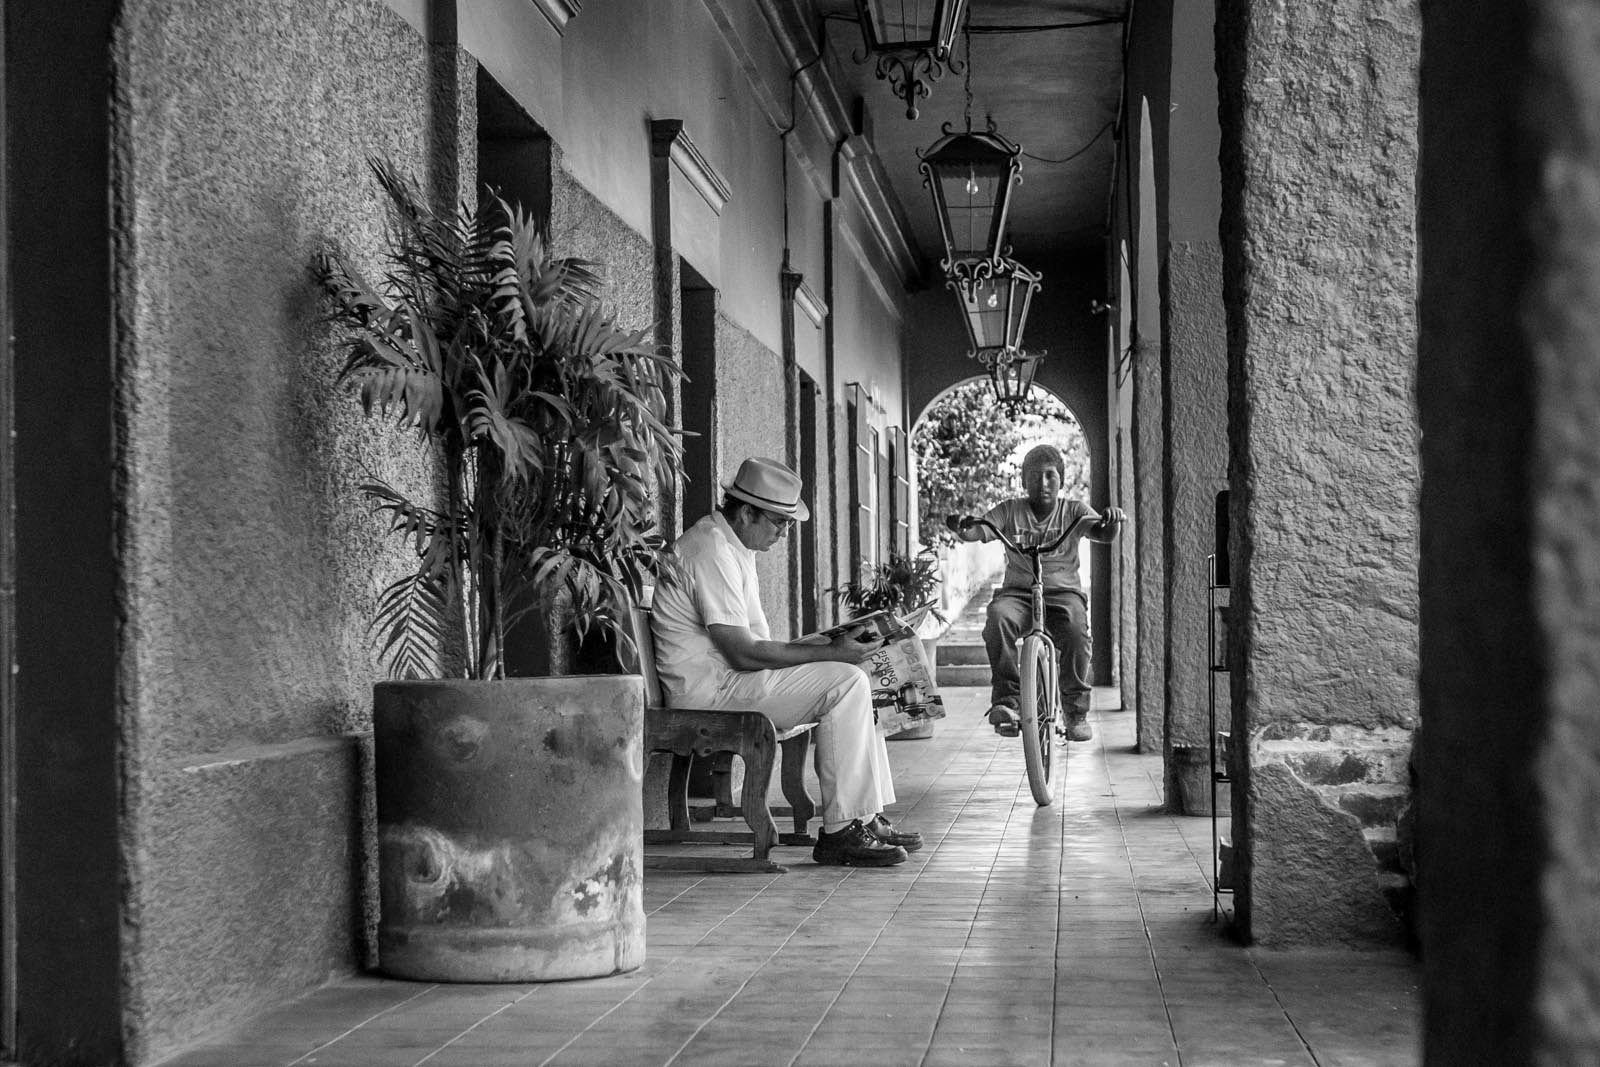 THE Hotel California in Todos Santos. You can check-out any time you like, but you can never leave...